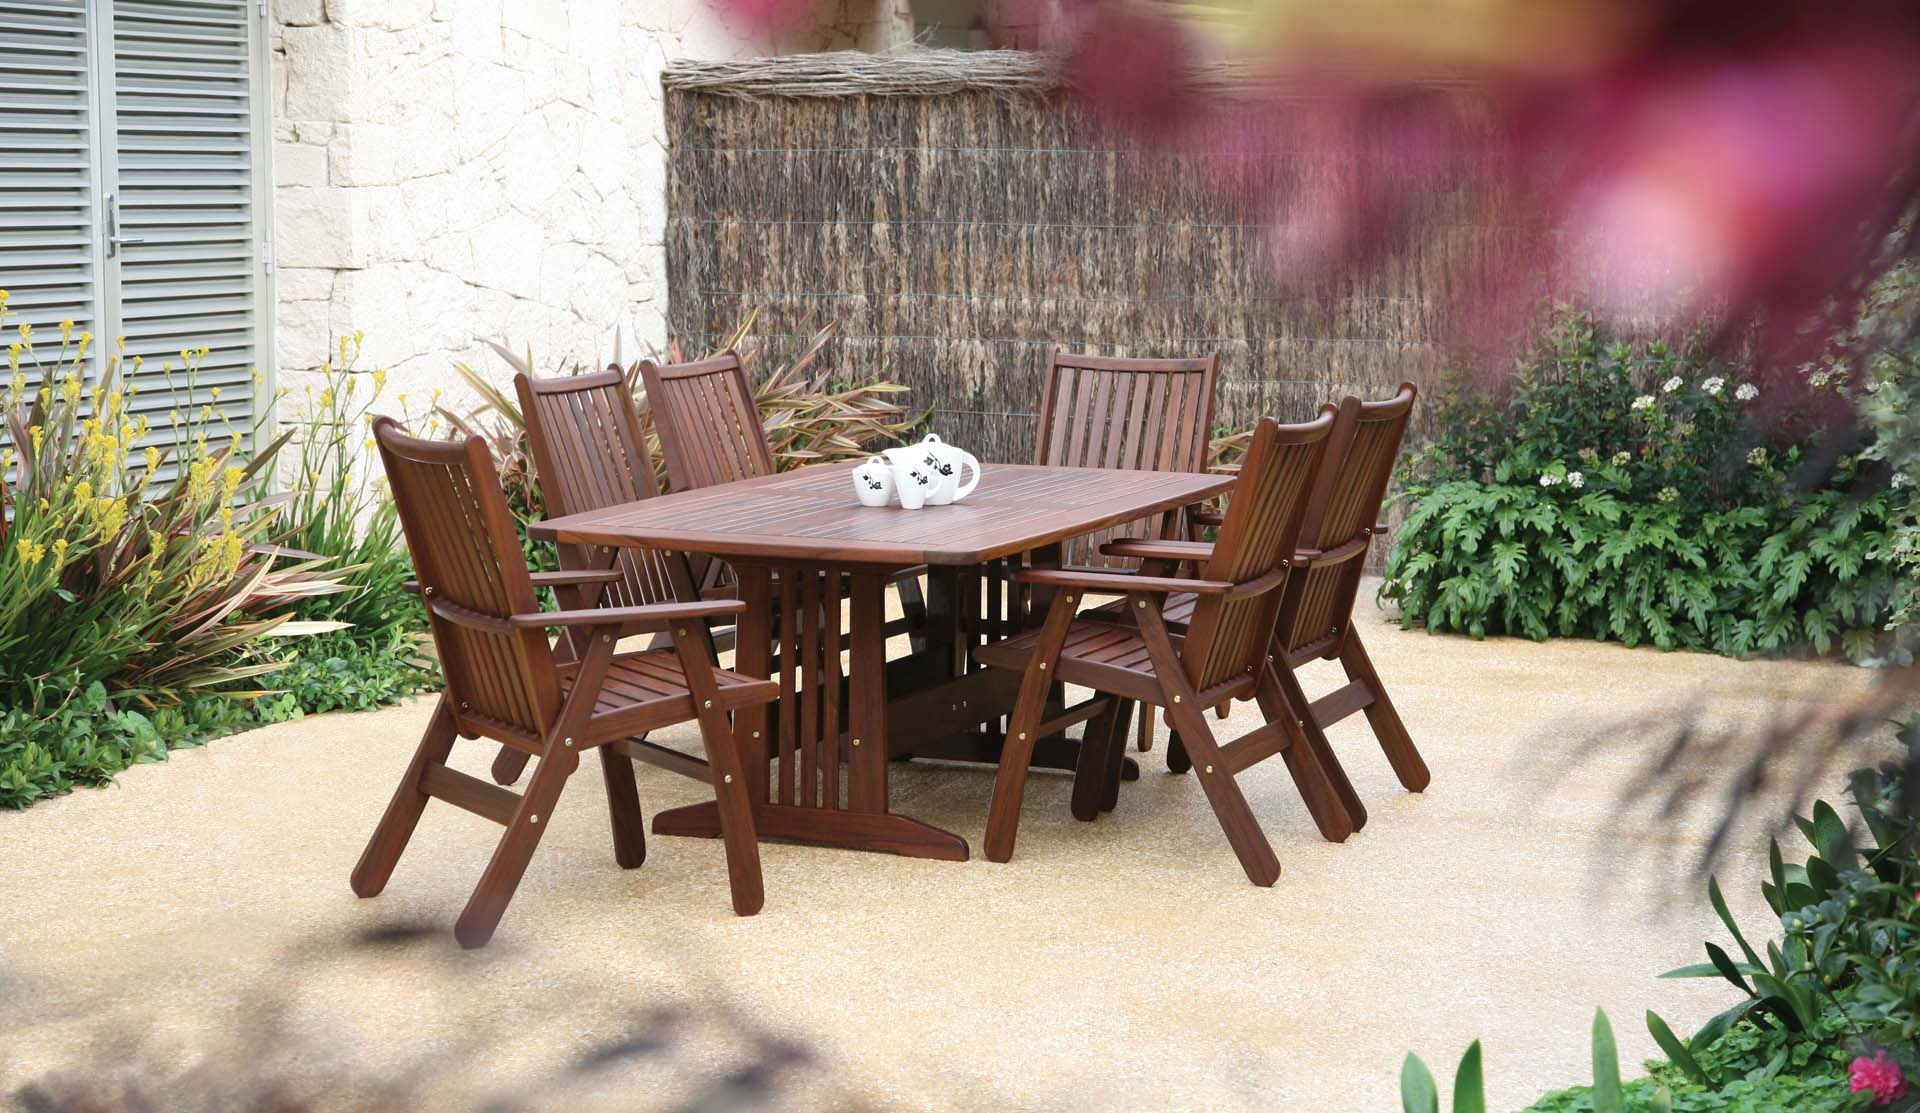 furniture with jensen inspirations leisure patio